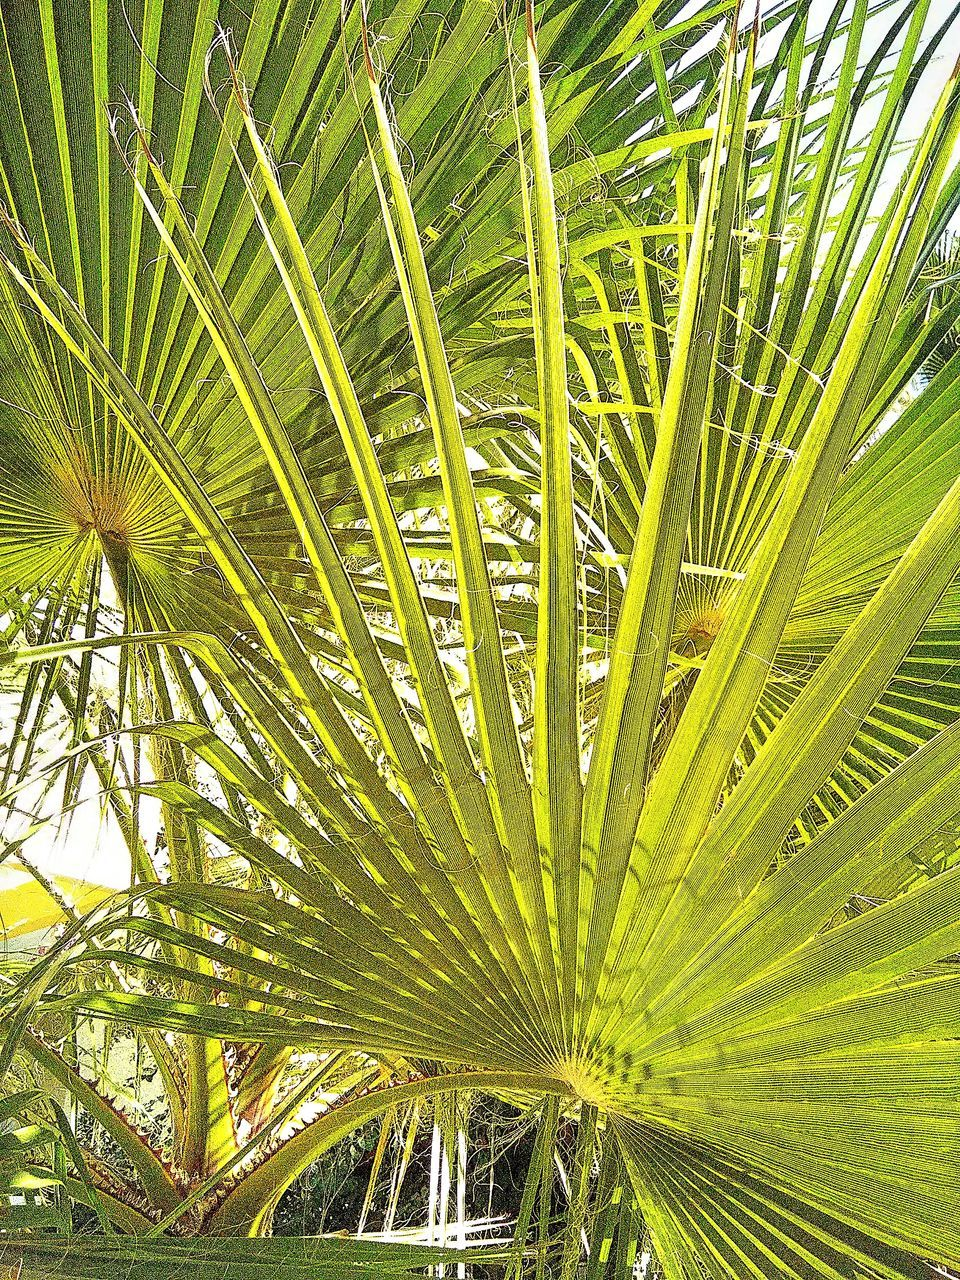 palm tree, palm leaf, frond, growth, green color, leaf, tropical climate, nature, beauty in nature, freshness, day, plant, close-up, backgrounds, no people, outdoors, fragility, exoticism, tree, flower